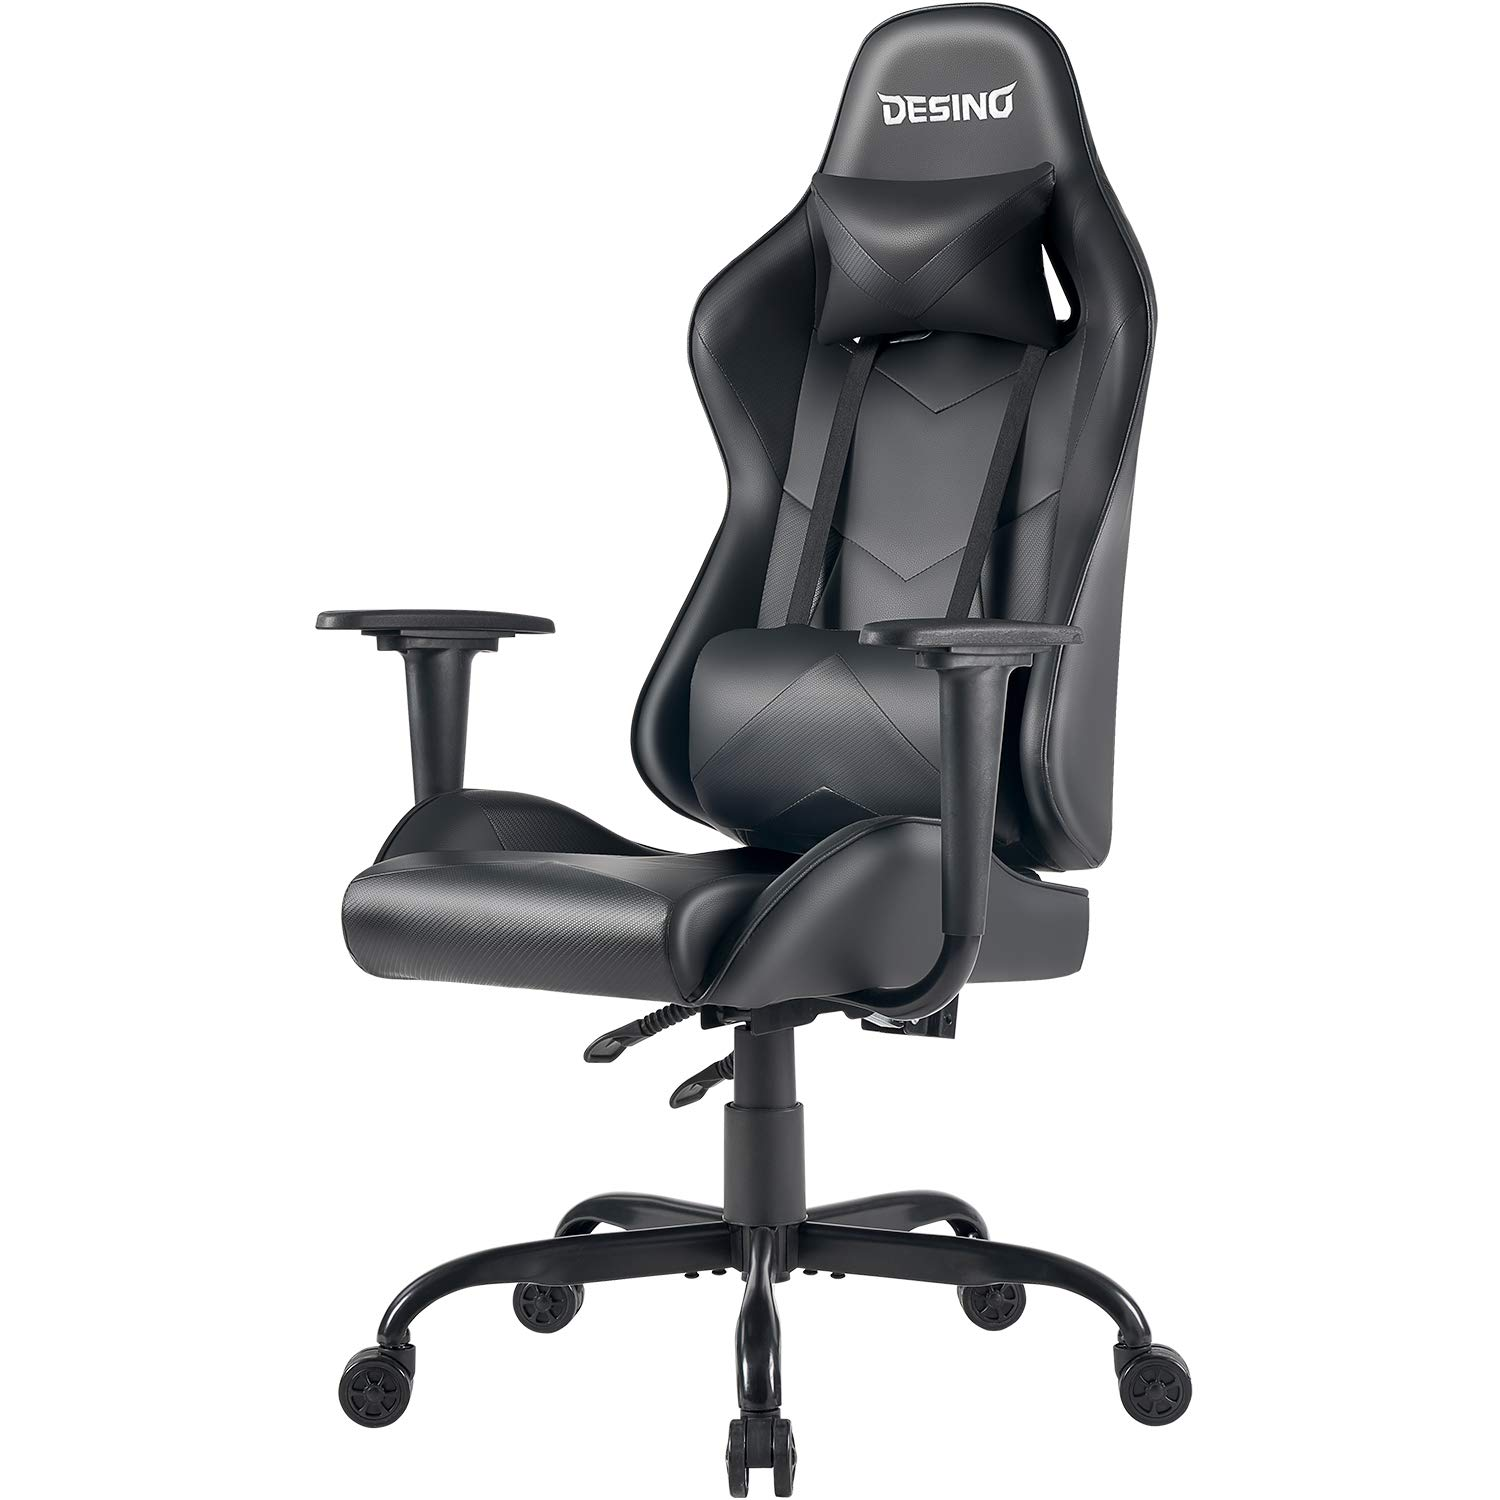 DESINO Gaming Chair Racing Style Home & Office Ergonomic Swivel Rolling Computer Chair with Headrest and Adjustable Lumbar Support (Black) by DESINO